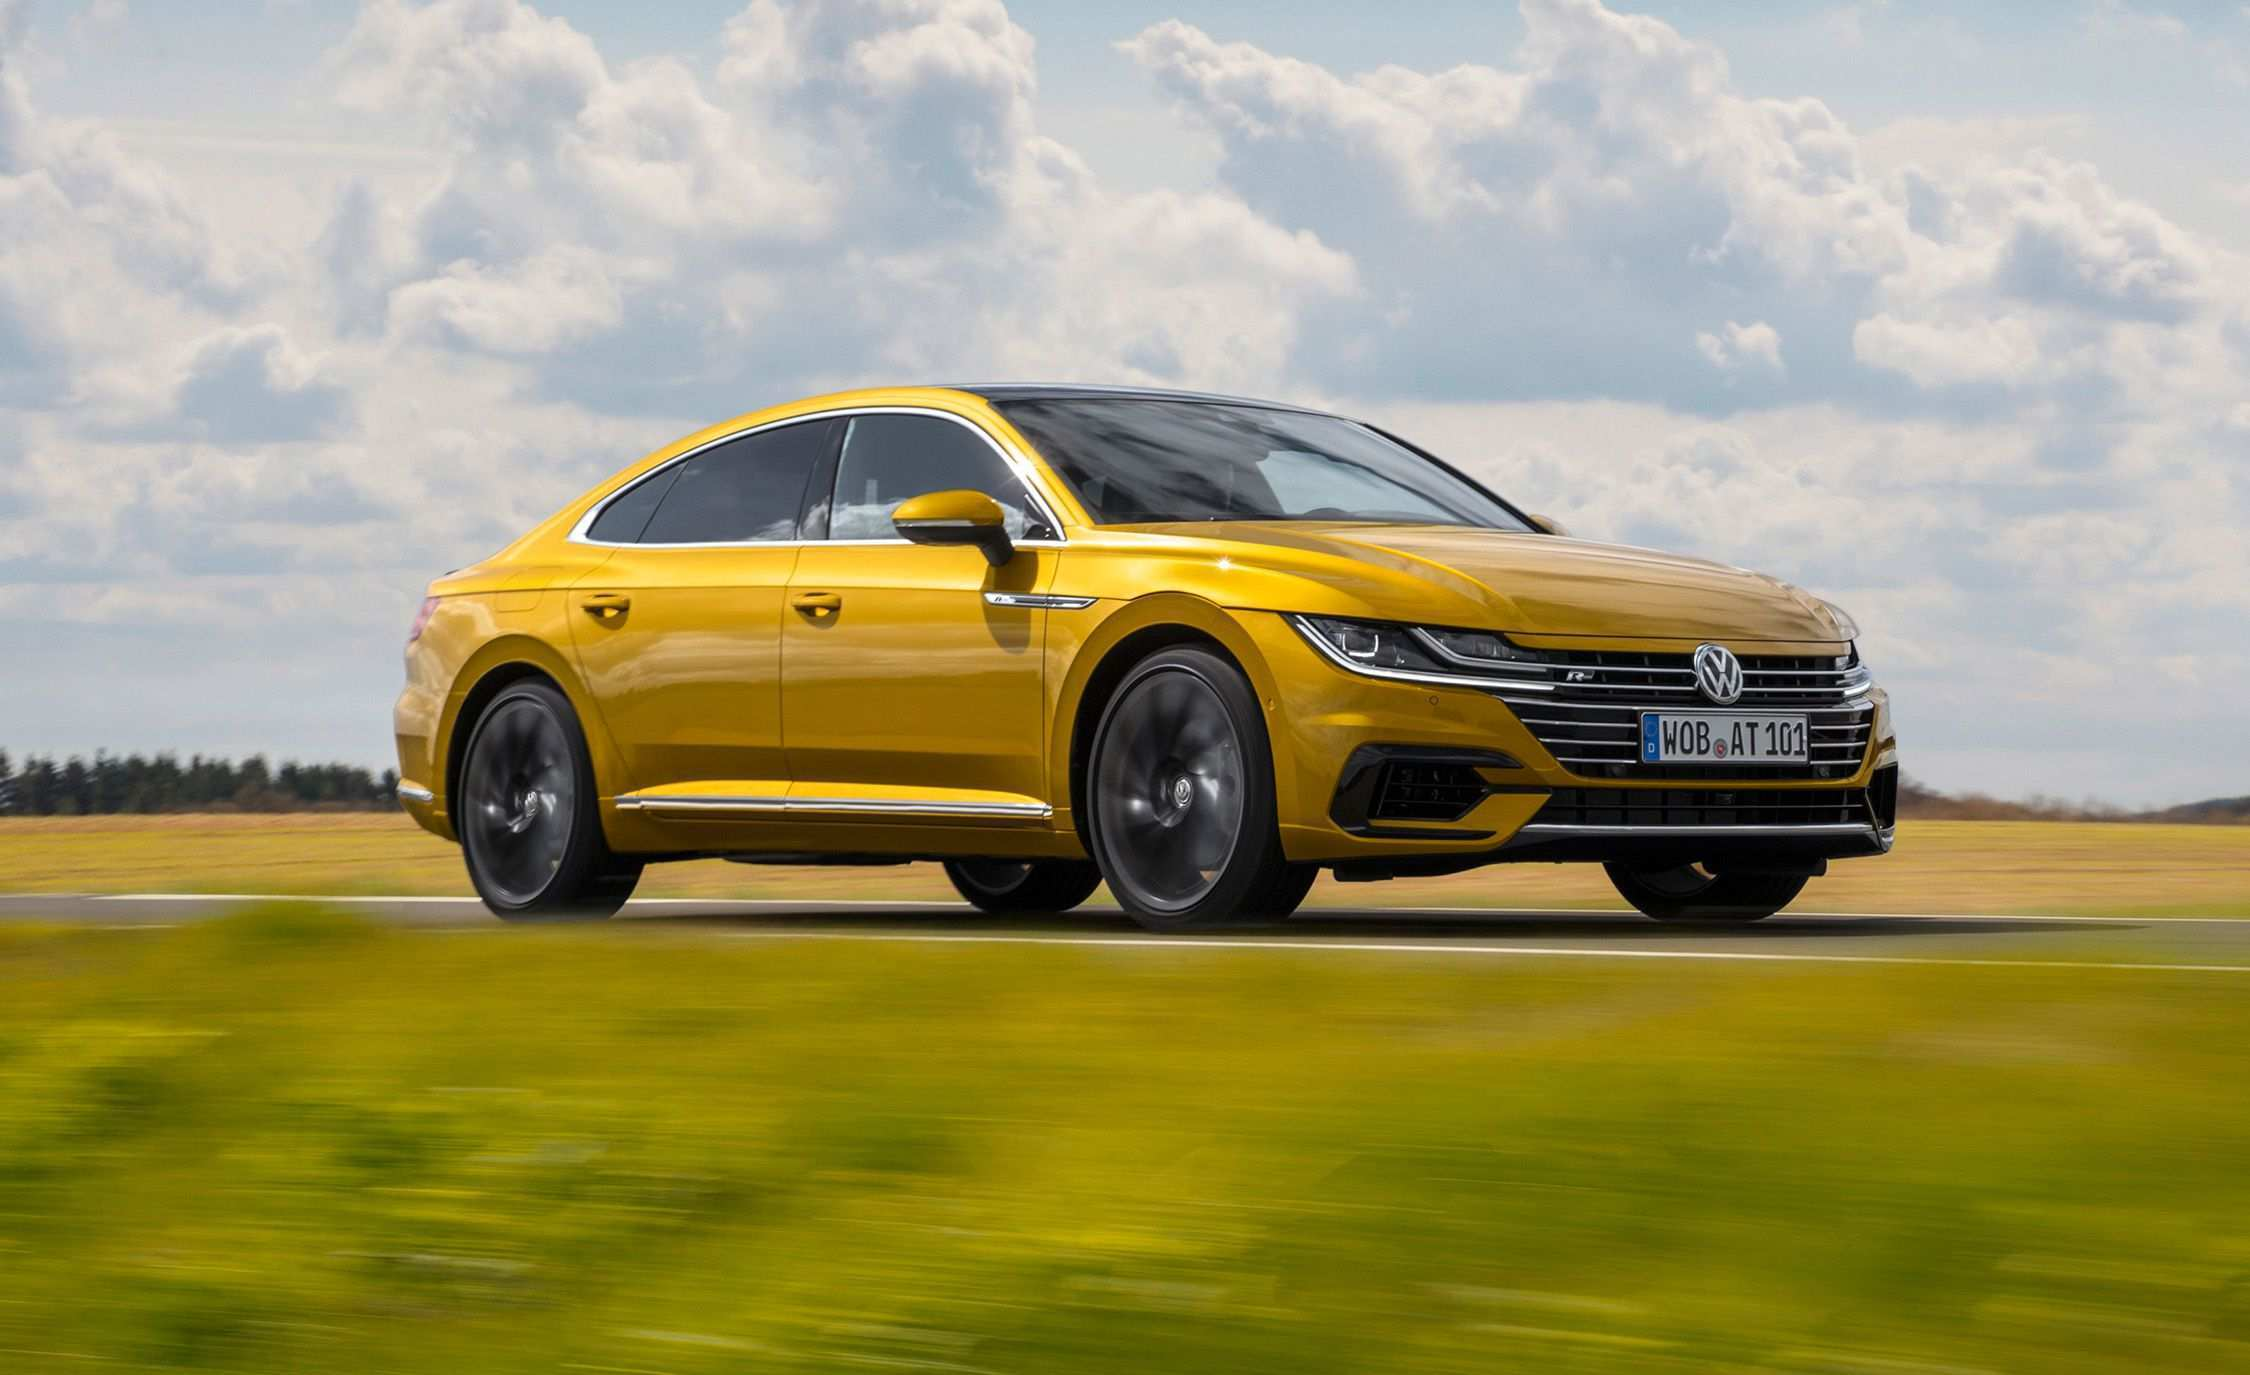 83 Best Review Best Volkswagen Lineup 2019 Review And Release Date Wallpaper with Best Volkswagen Lineup 2019 Review And Release Date